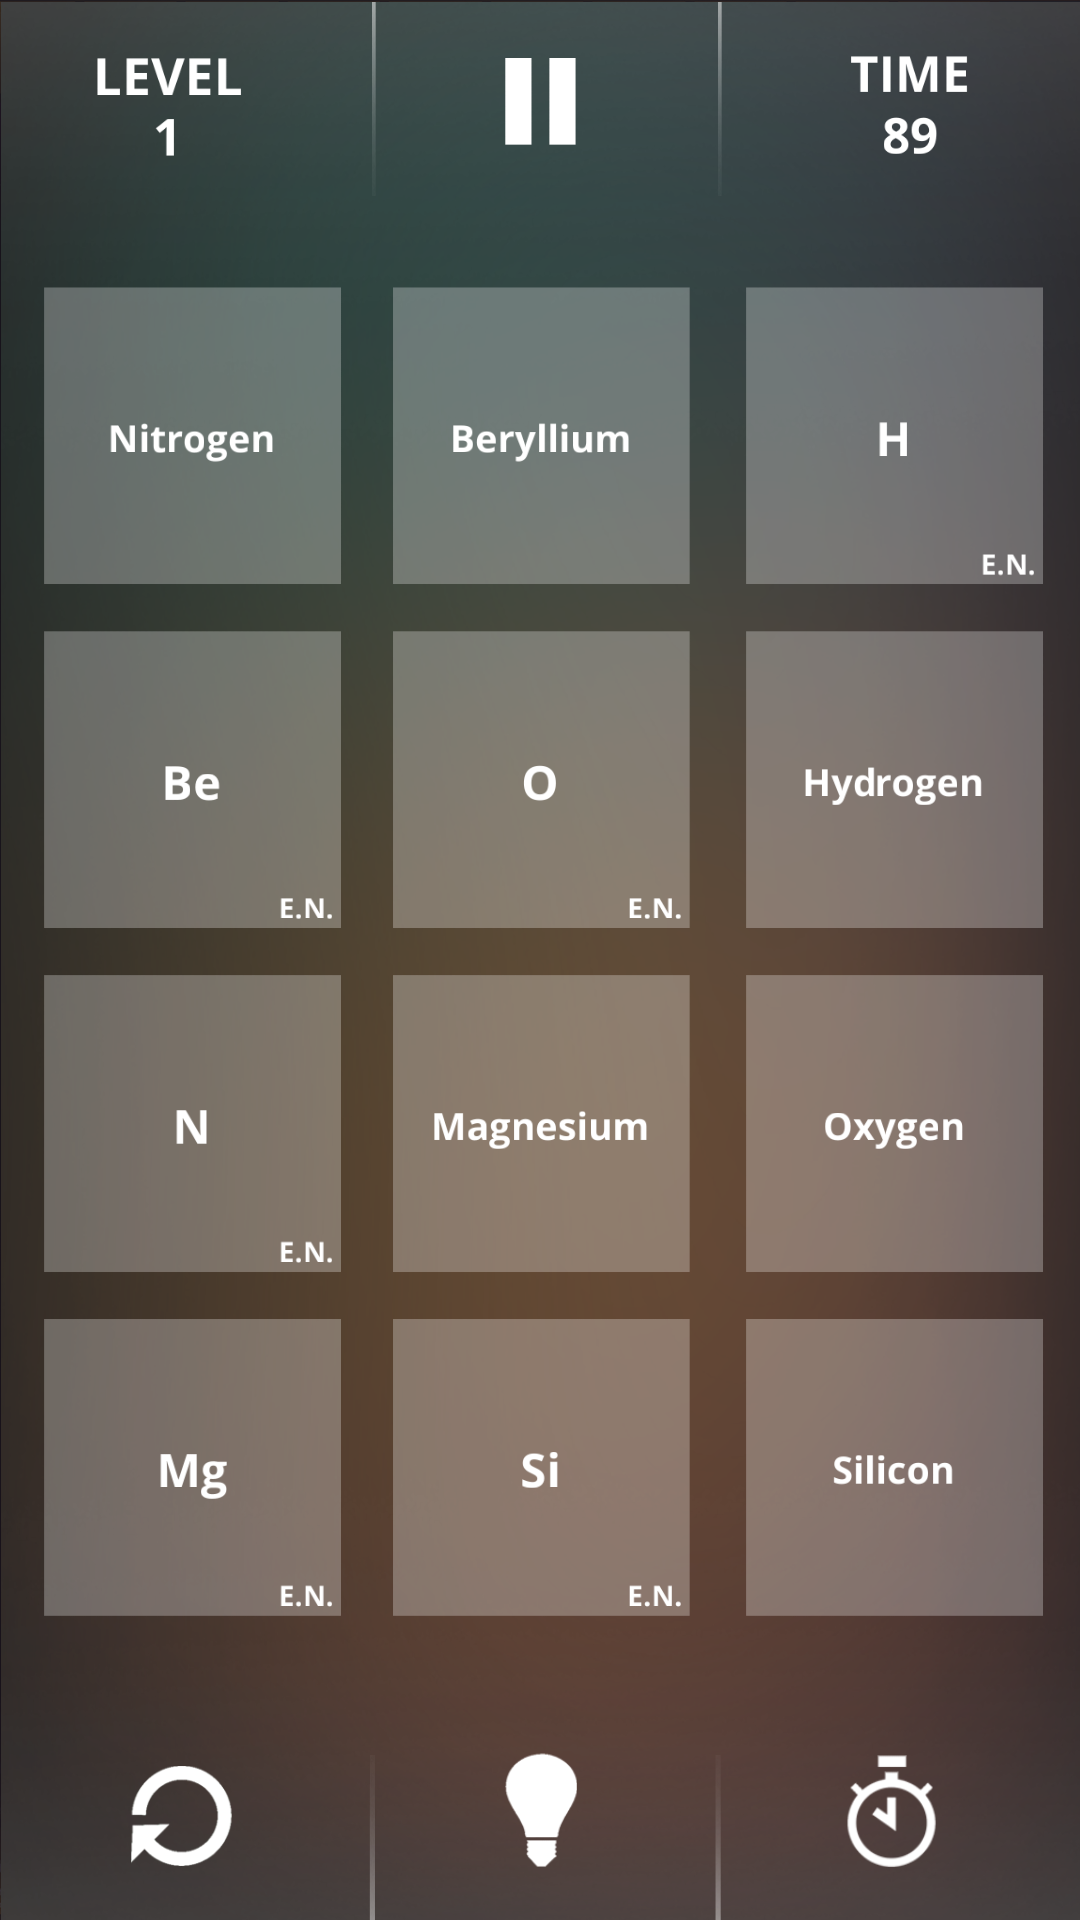 Cellec games periodic table this app is suitable for wide range of touch based devices please check descirption in respective app store for device and software compatibility urtaz Choice Image